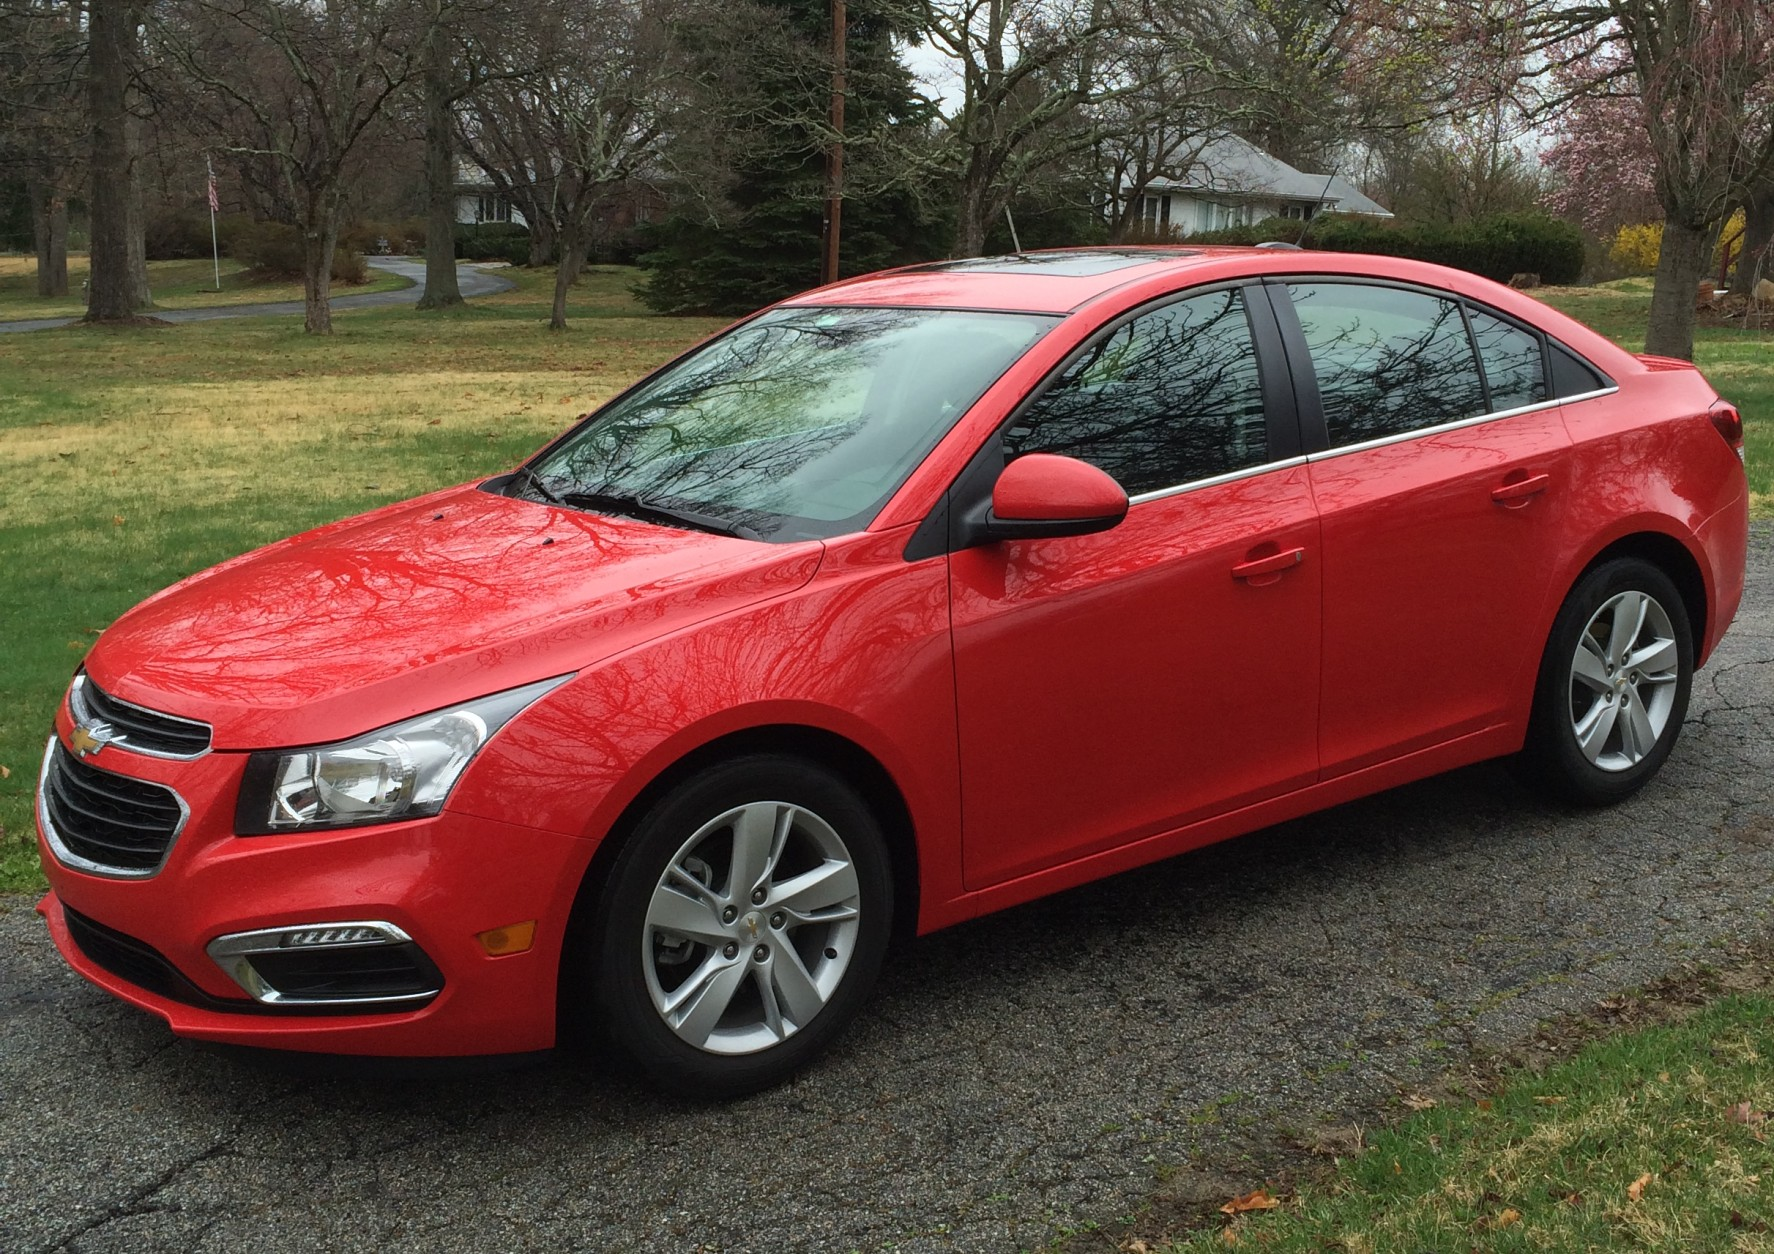 The 2015 Chevrolet Cruze Diesel delivers a comfortable ride and high miles per gallon. (WTOP/Mike Parris)